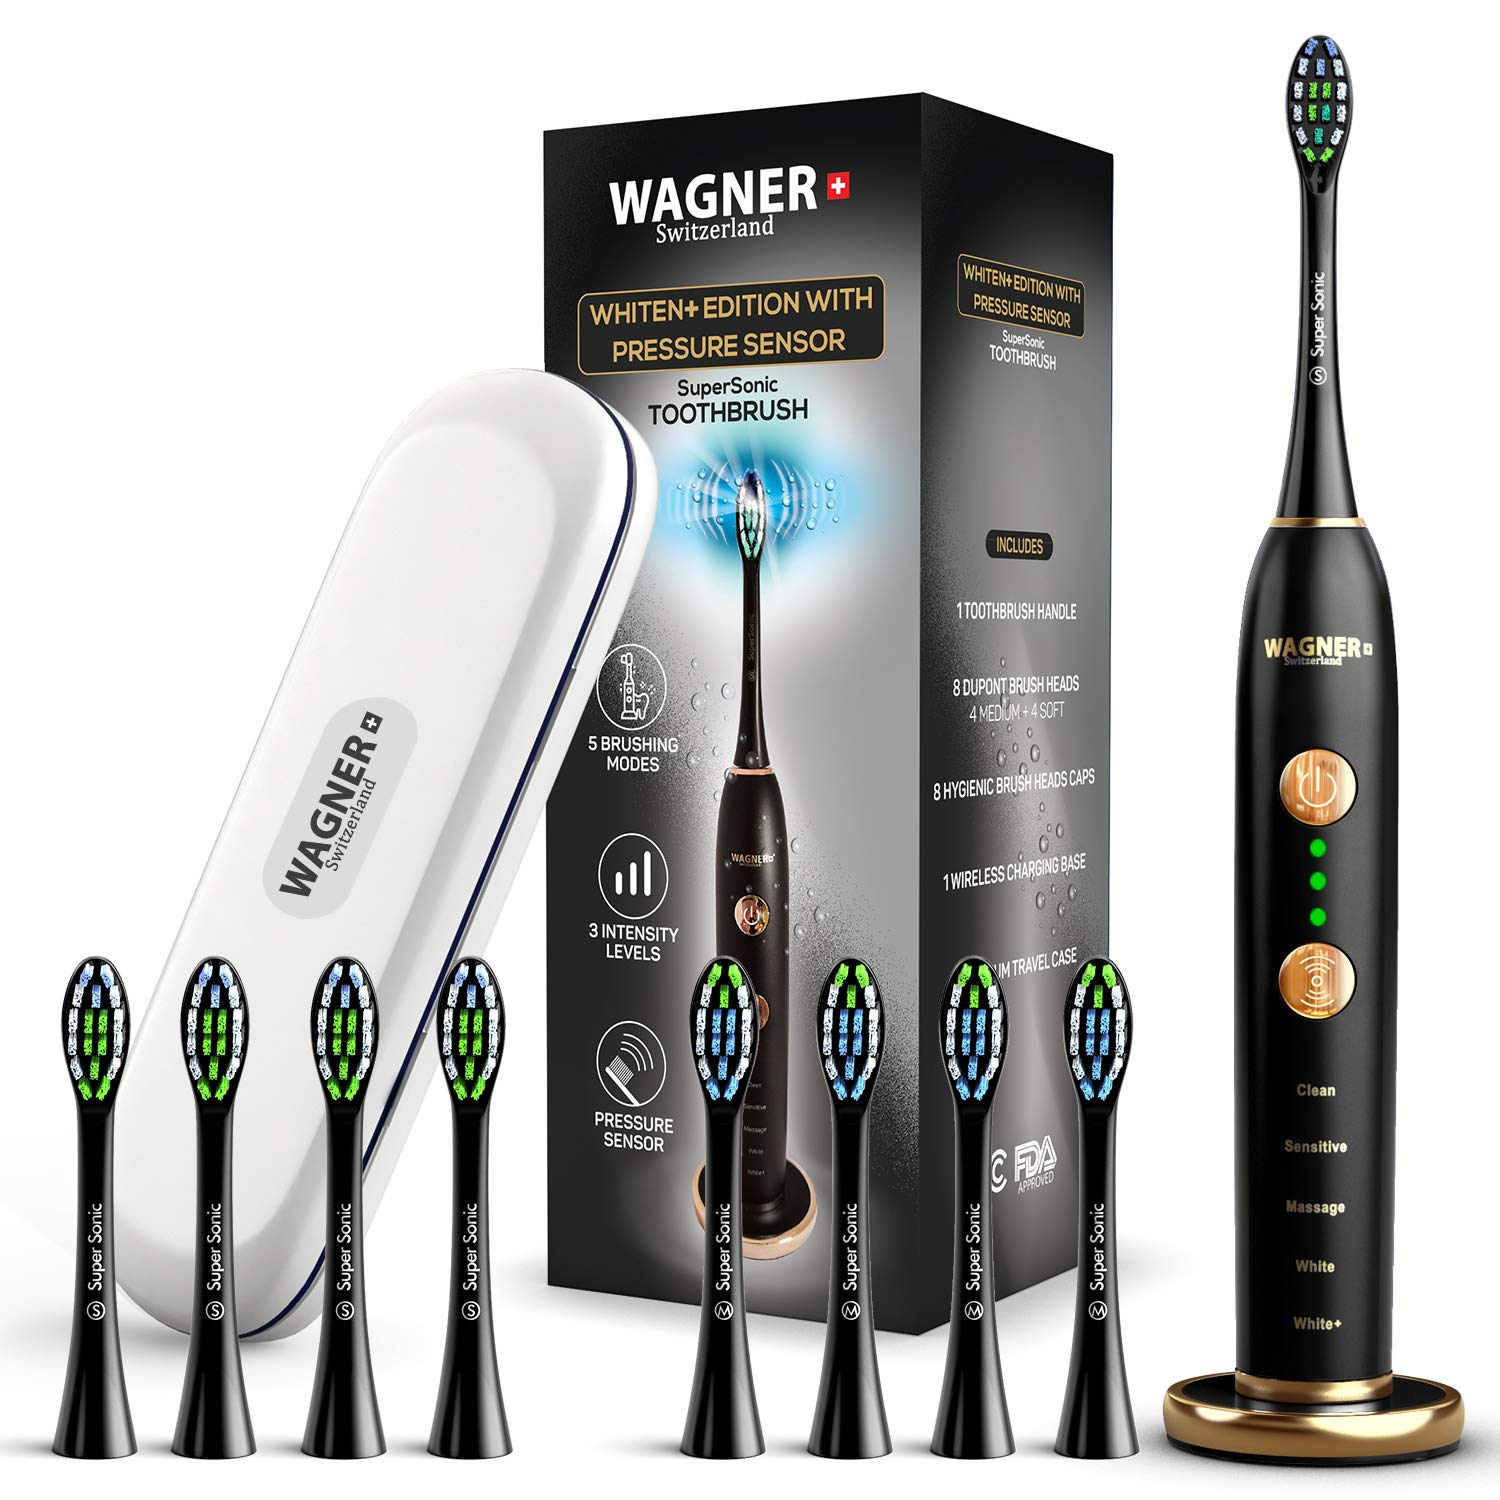 WAGNER Switzerland WHITEN+ EDITION. Smart electric toothbrush with PRESSURE SENSOR. 5 Brushing Modes and 3 INTENSITY Levels, 8 DuPont Bristles, Premium Travel Case, USB Wireless charging. by WAGNER Switzerland